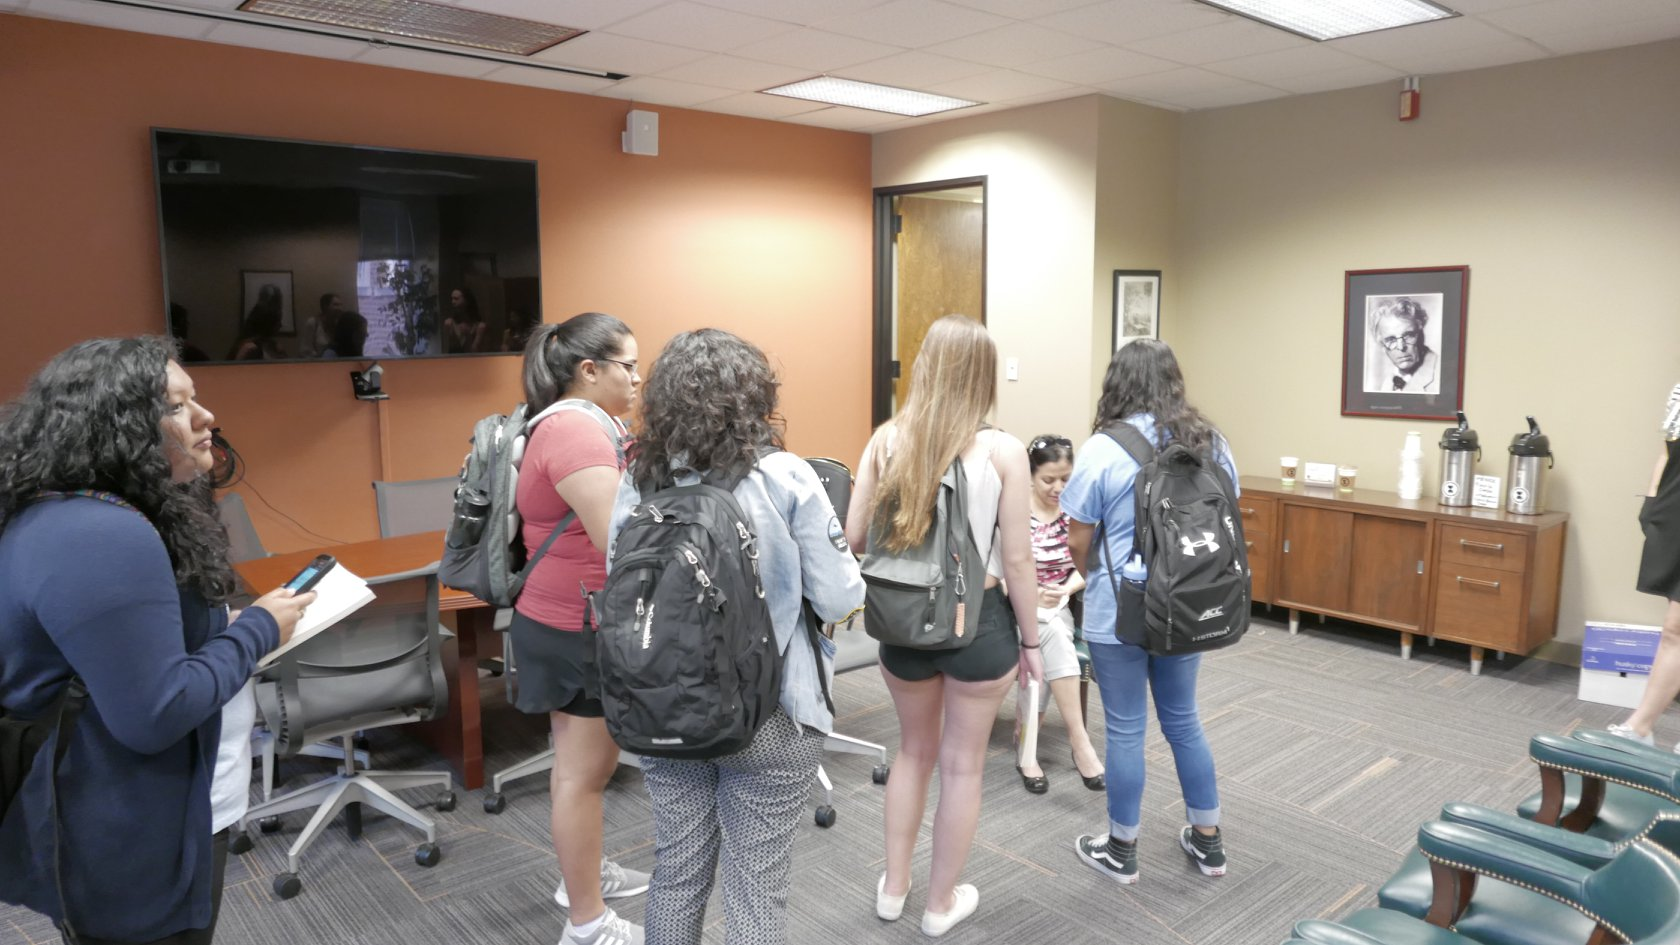 The back of five students as they wait in line to meet with Daisy Hernández, who is seated signing books in the center of a large conference room.